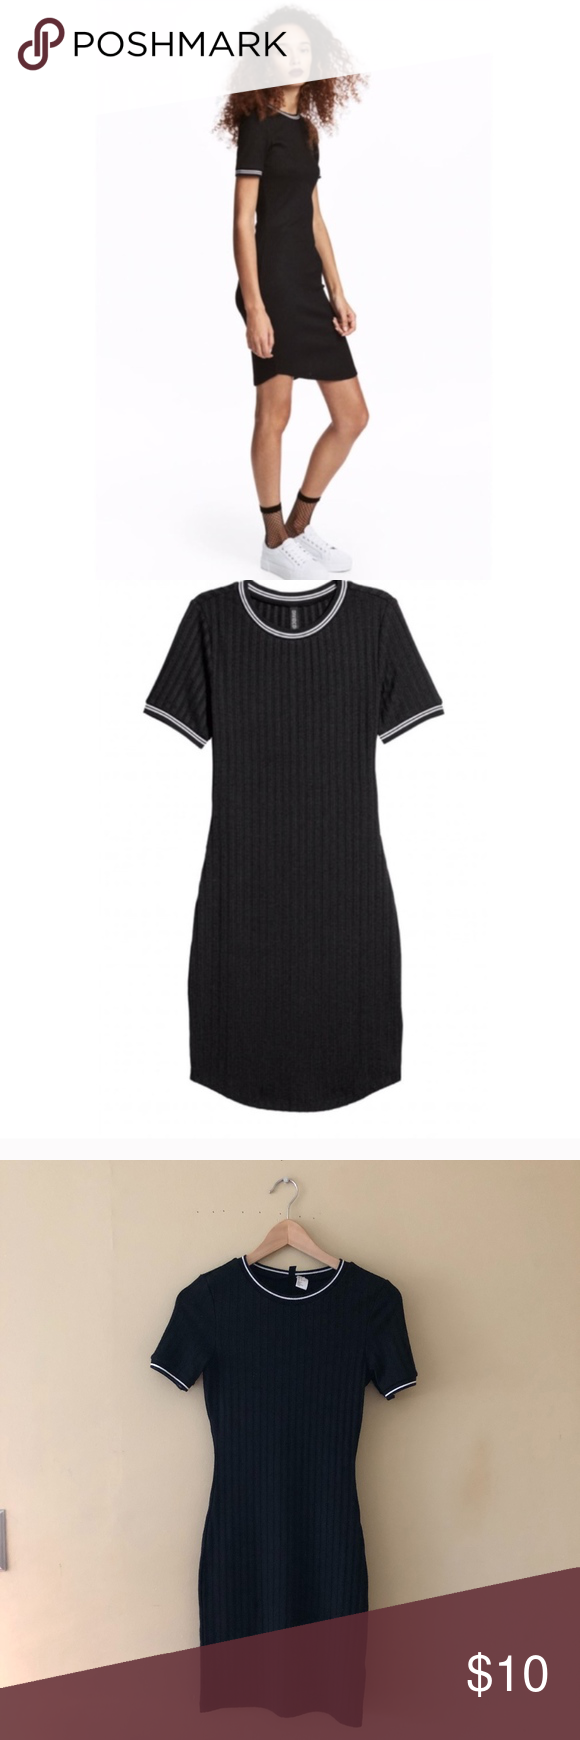 H&m ribbed bodycon dress sale outfits